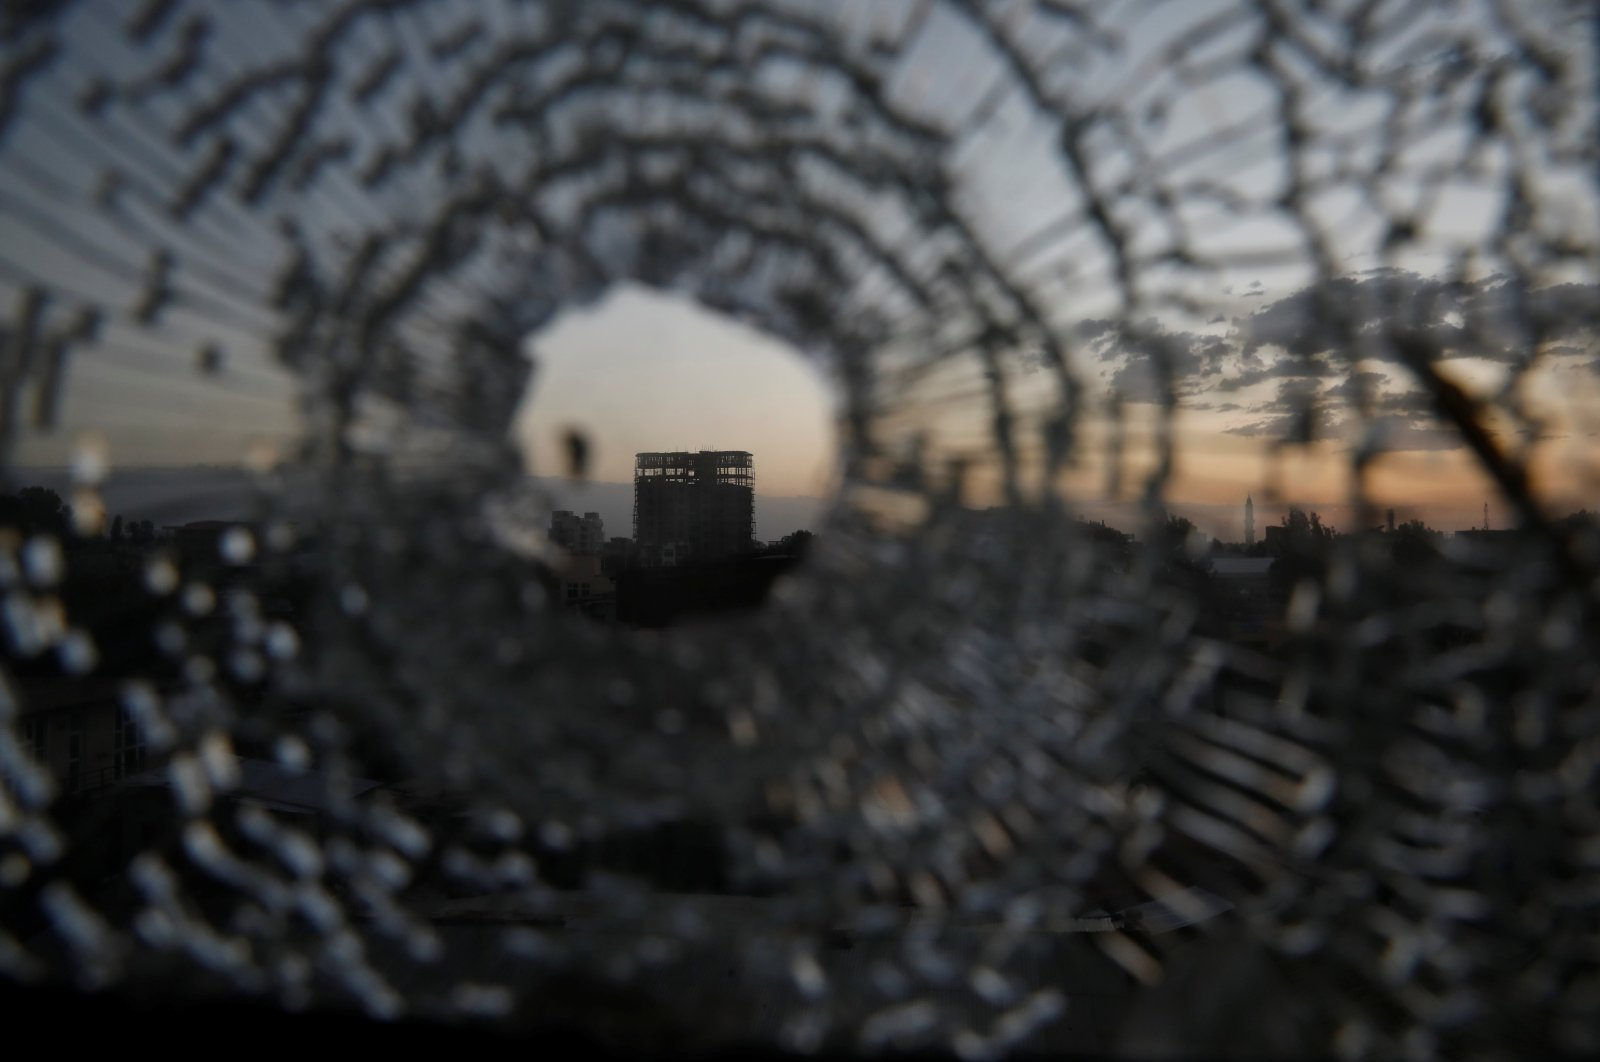 A building is seen through a bullet hole in a window of the Africa Hotel in the town of Shire, Tigray region, Ethiopia, March 16, 2021. (Reuters Photo)